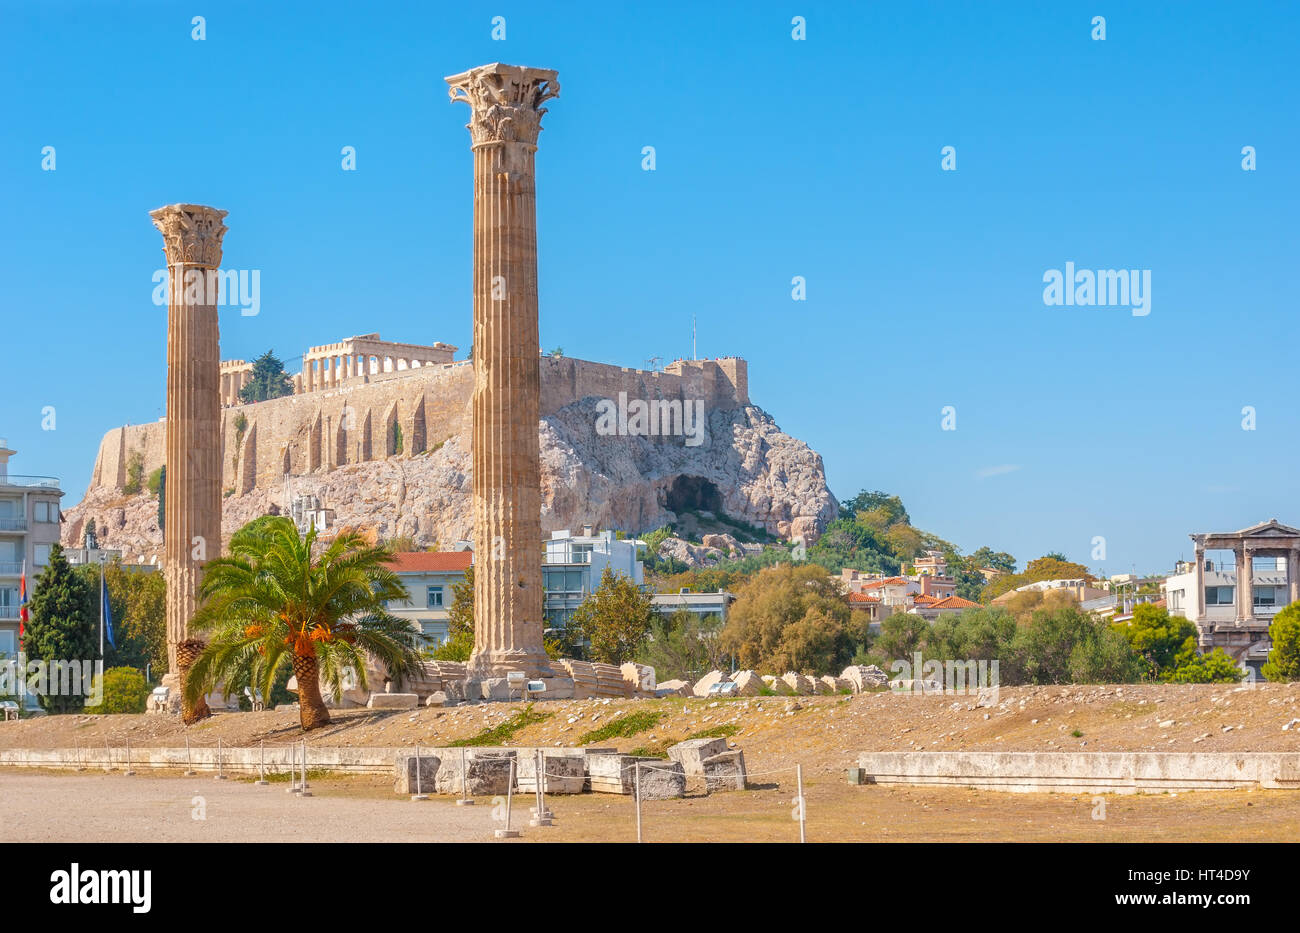 The Acropolis Hill with Parthenon on the top behind the carved stone columns of Olympian Zeus Temple, Athens, Greece - Stock Image